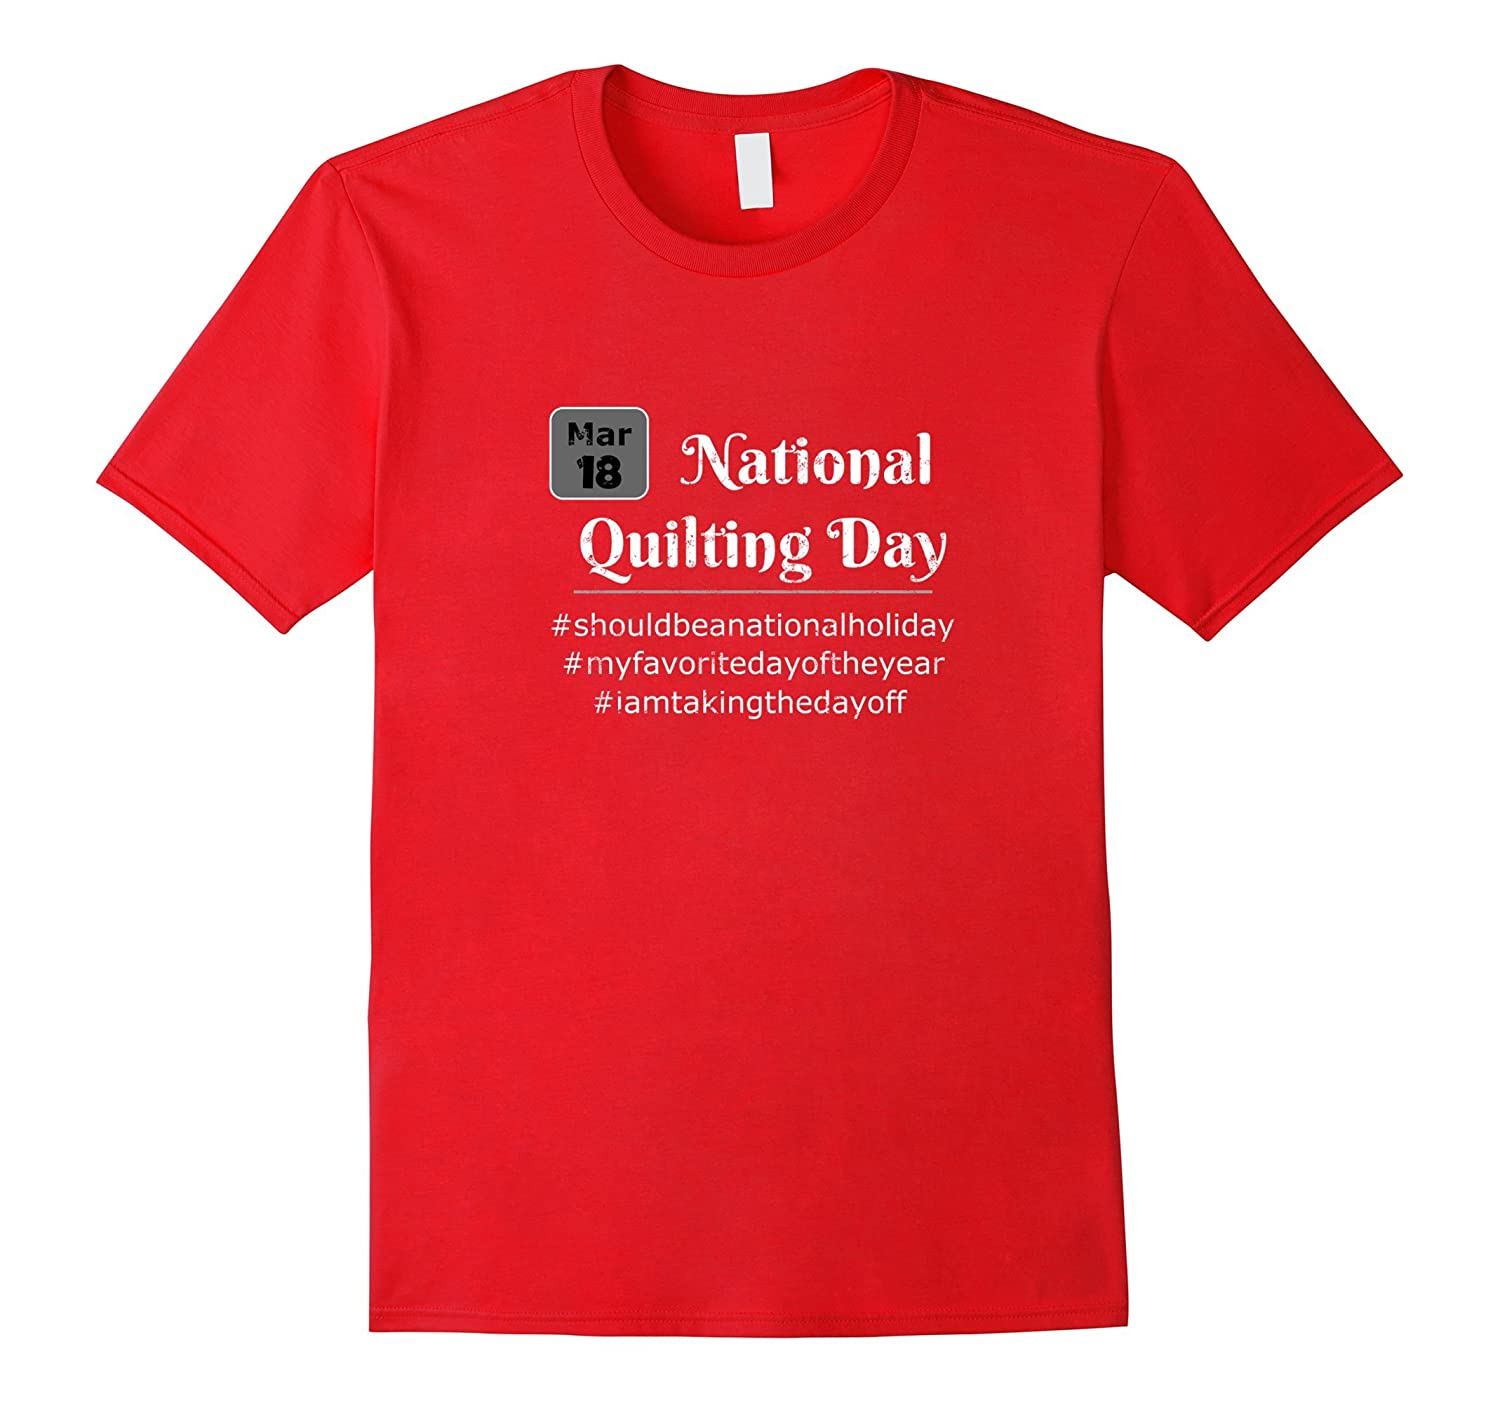 Mar 18 National Quilting Day - Funny obscure gift t-shirt-Vaci